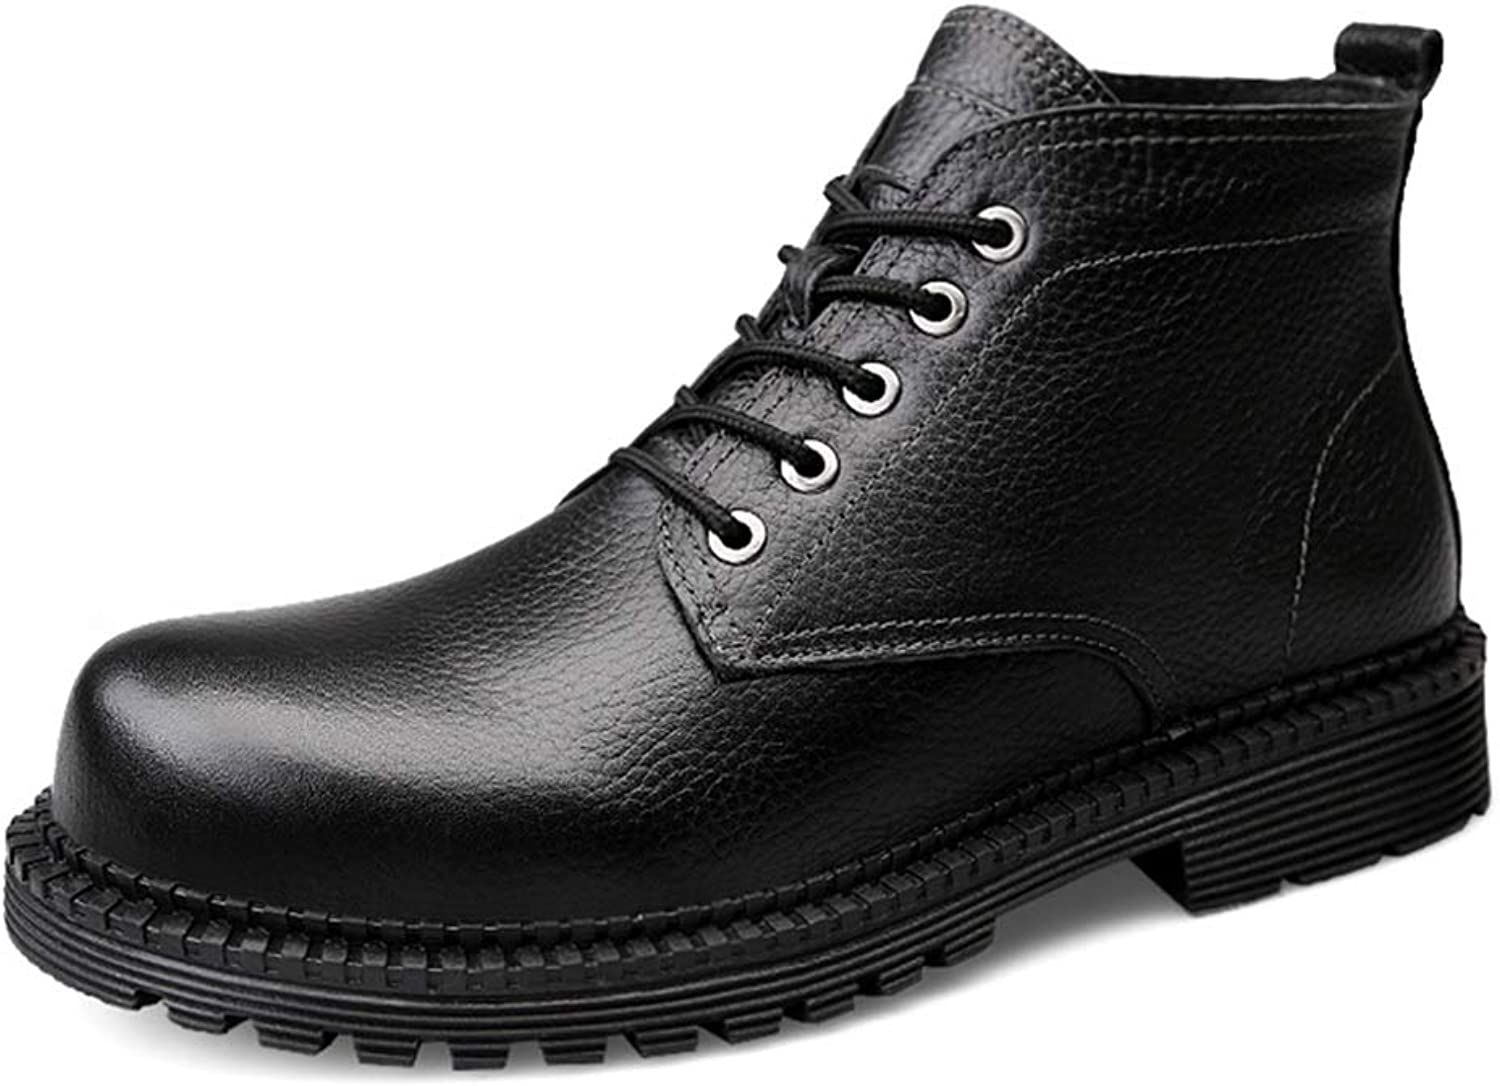 YJiaJu Fashion Ankle Work Boot, Casual Simple Winter Faux Fleece Inside High Top Boot(Conventional Optional) for Men Women (color   Black, Size   8.5 D(M) US)